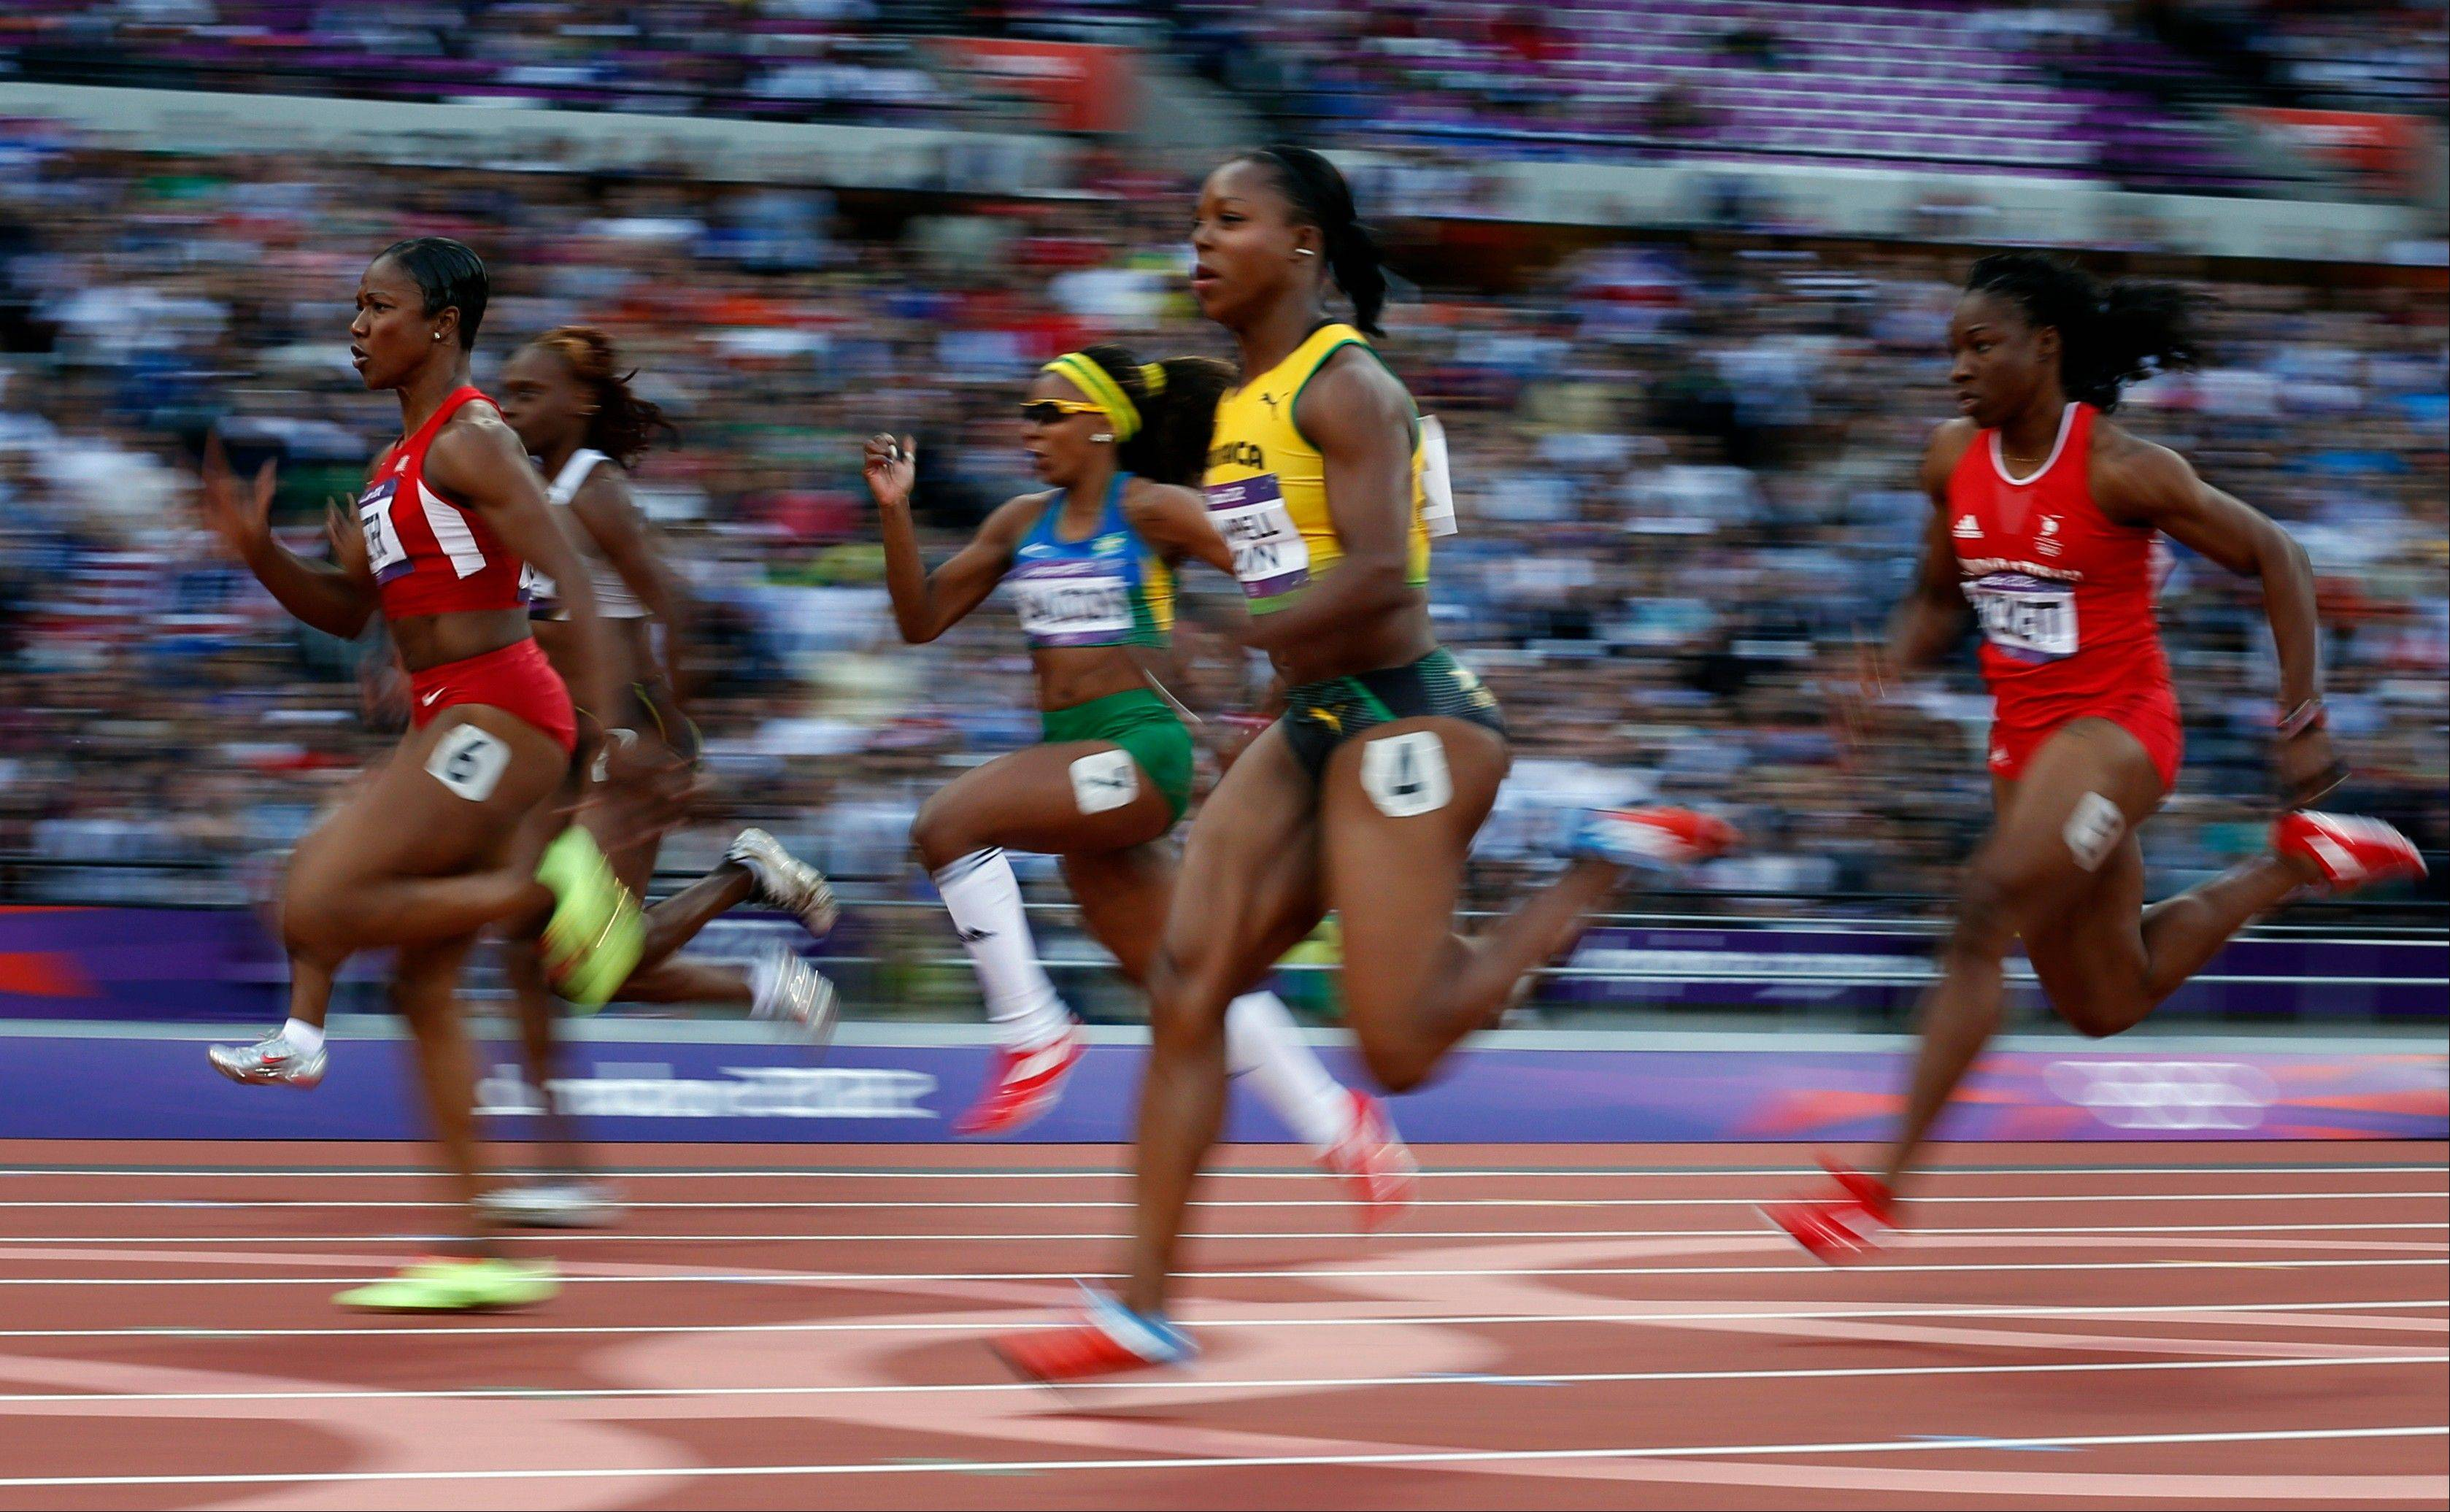 The United States' Carmelita Jeter, left, and Jamaica's Veronica Campbell-Brown, center, compete in the women's 100-meter semifinal during athletics competition in the Olympic Stadium at the 2012 Summer Olympics, Saturday, Aug. 4, 2012, in London.